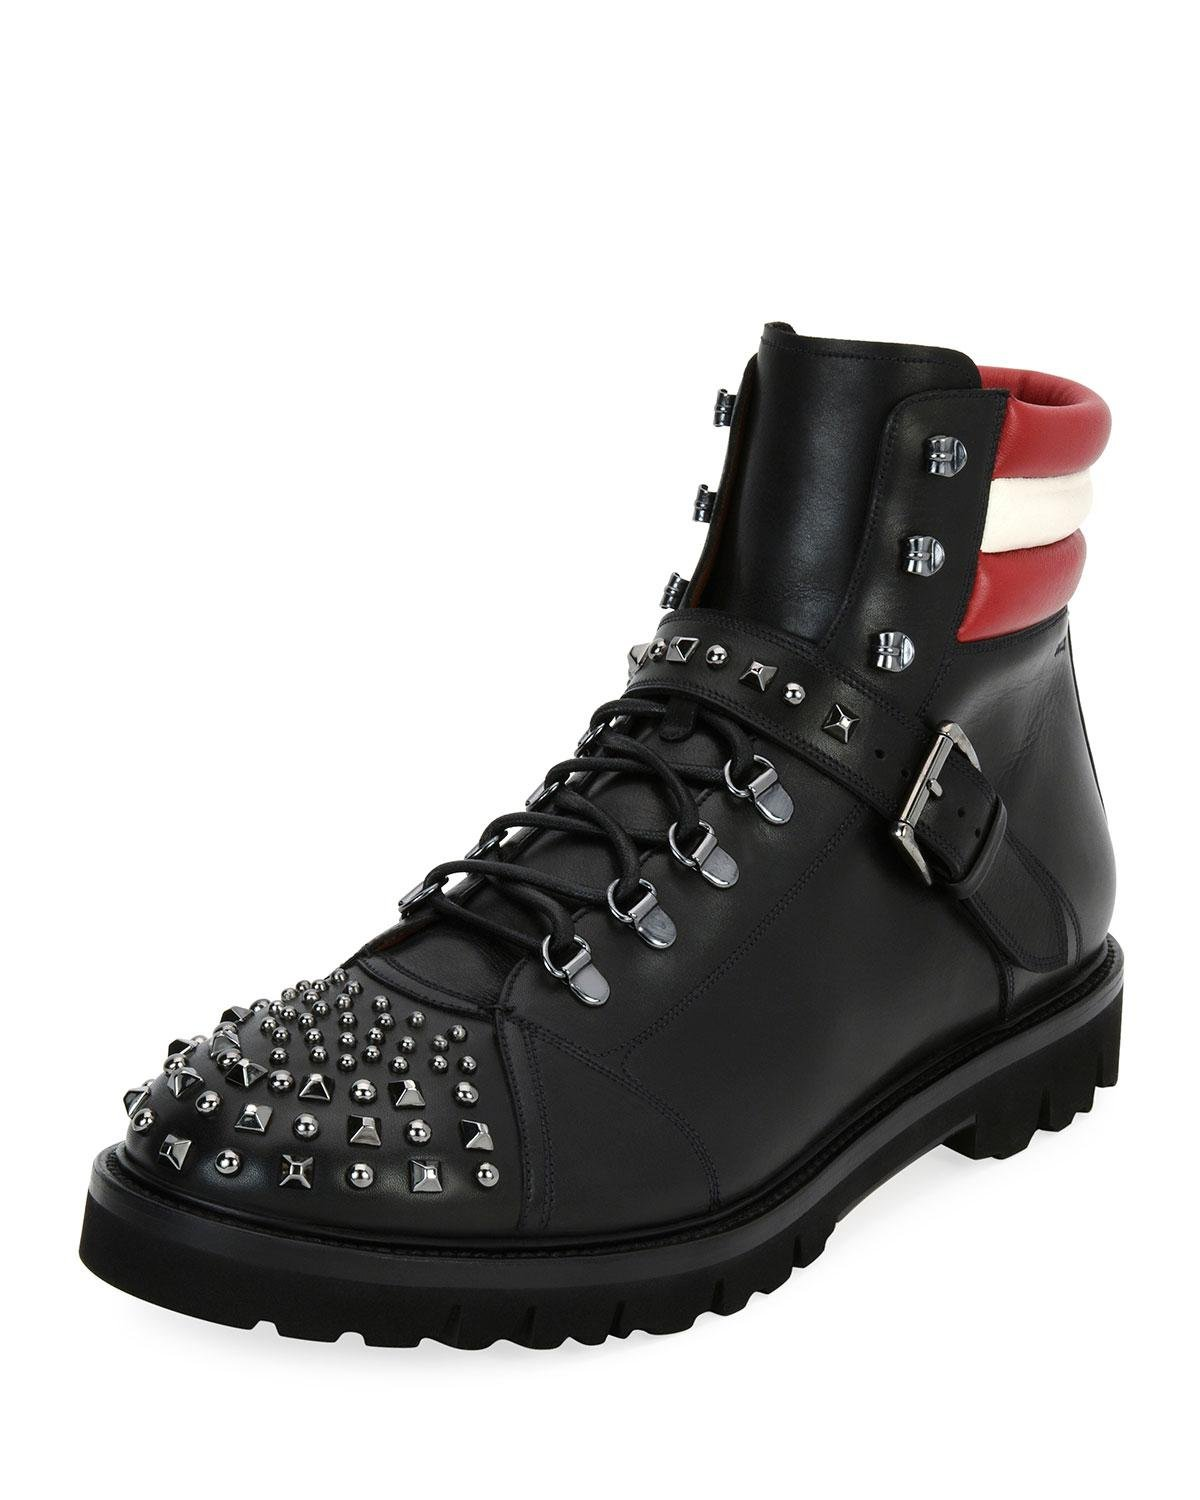 0772a8b0e04 Lyst - Bally Champions Studded Leather Hiking Boot in Black for Men